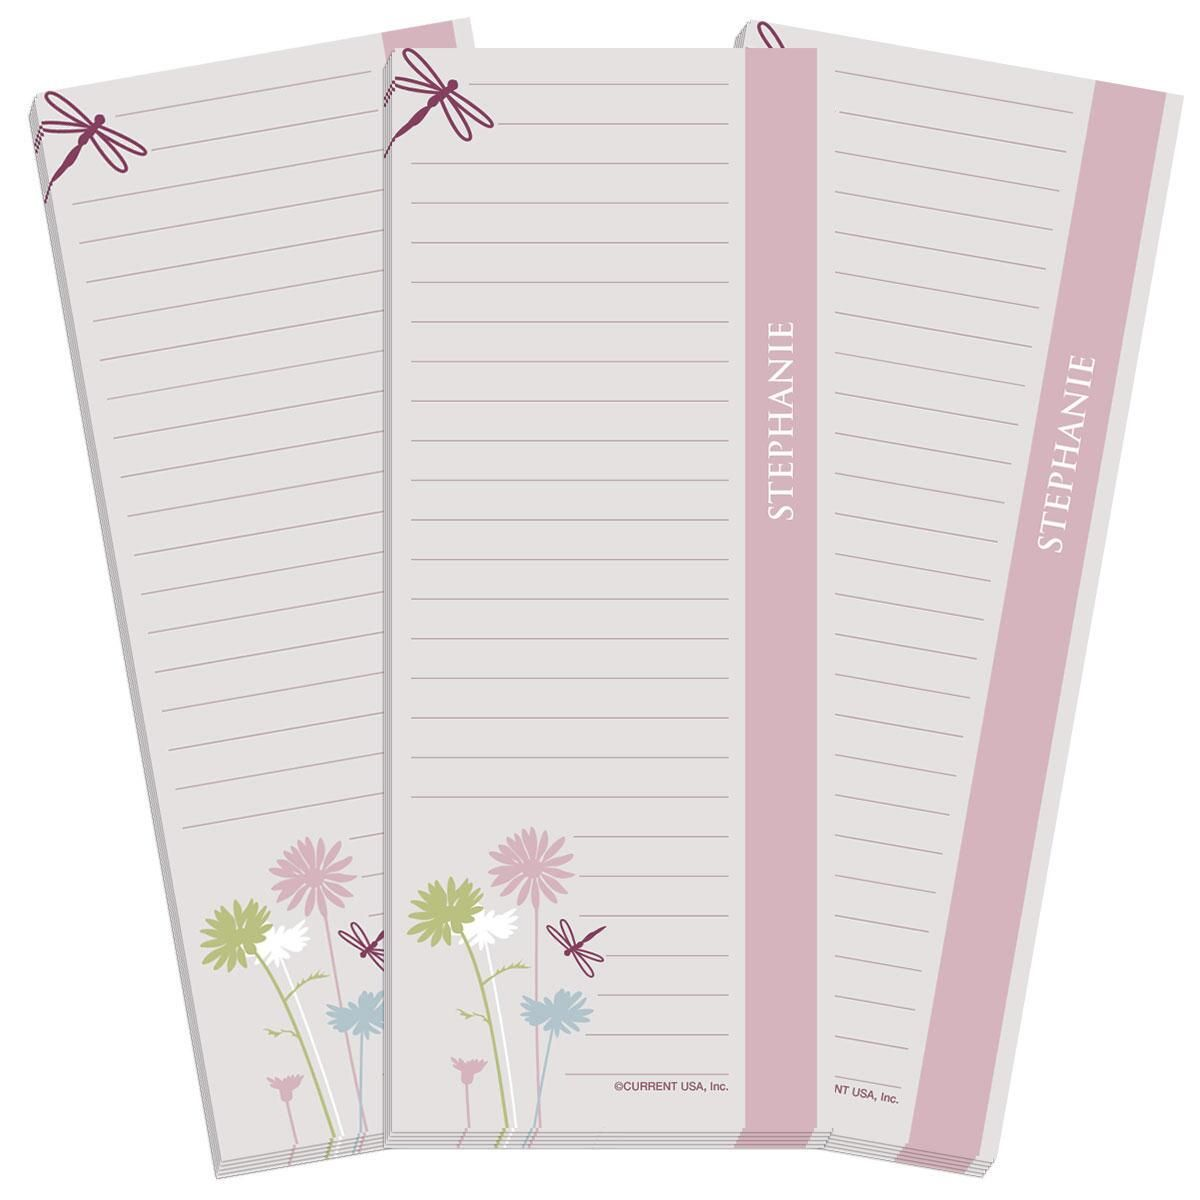 Dragonfly Lined Shopping List Pads